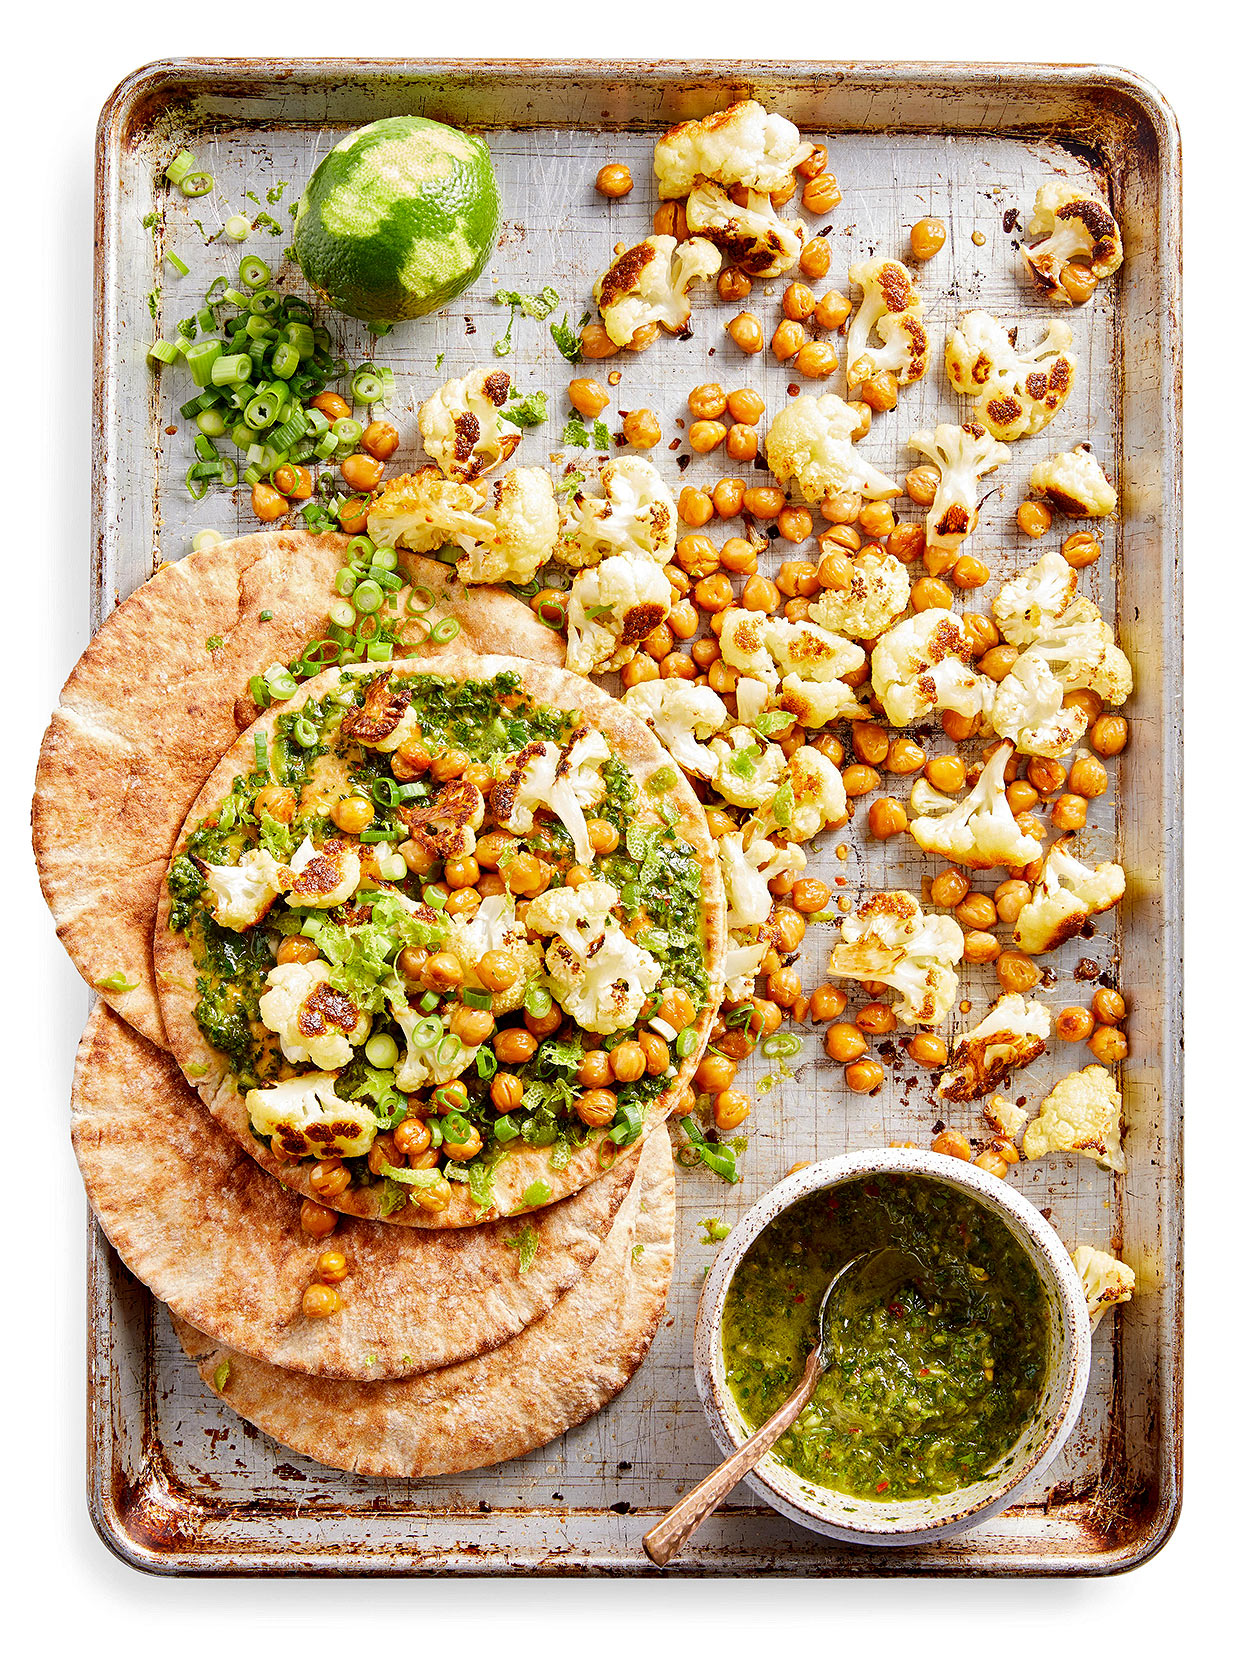 Roasted Cauliflower and Chickpeas with Chimichurri on sheet pan